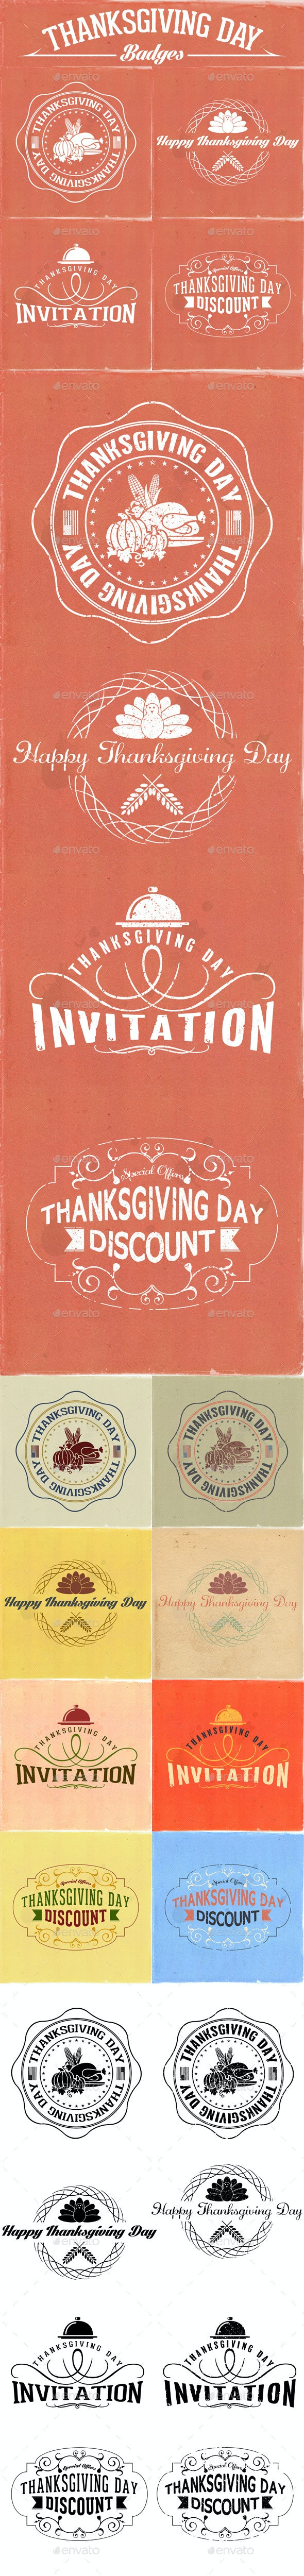 Thanksgiving Day Badges - Badges & Stickers Web Elements